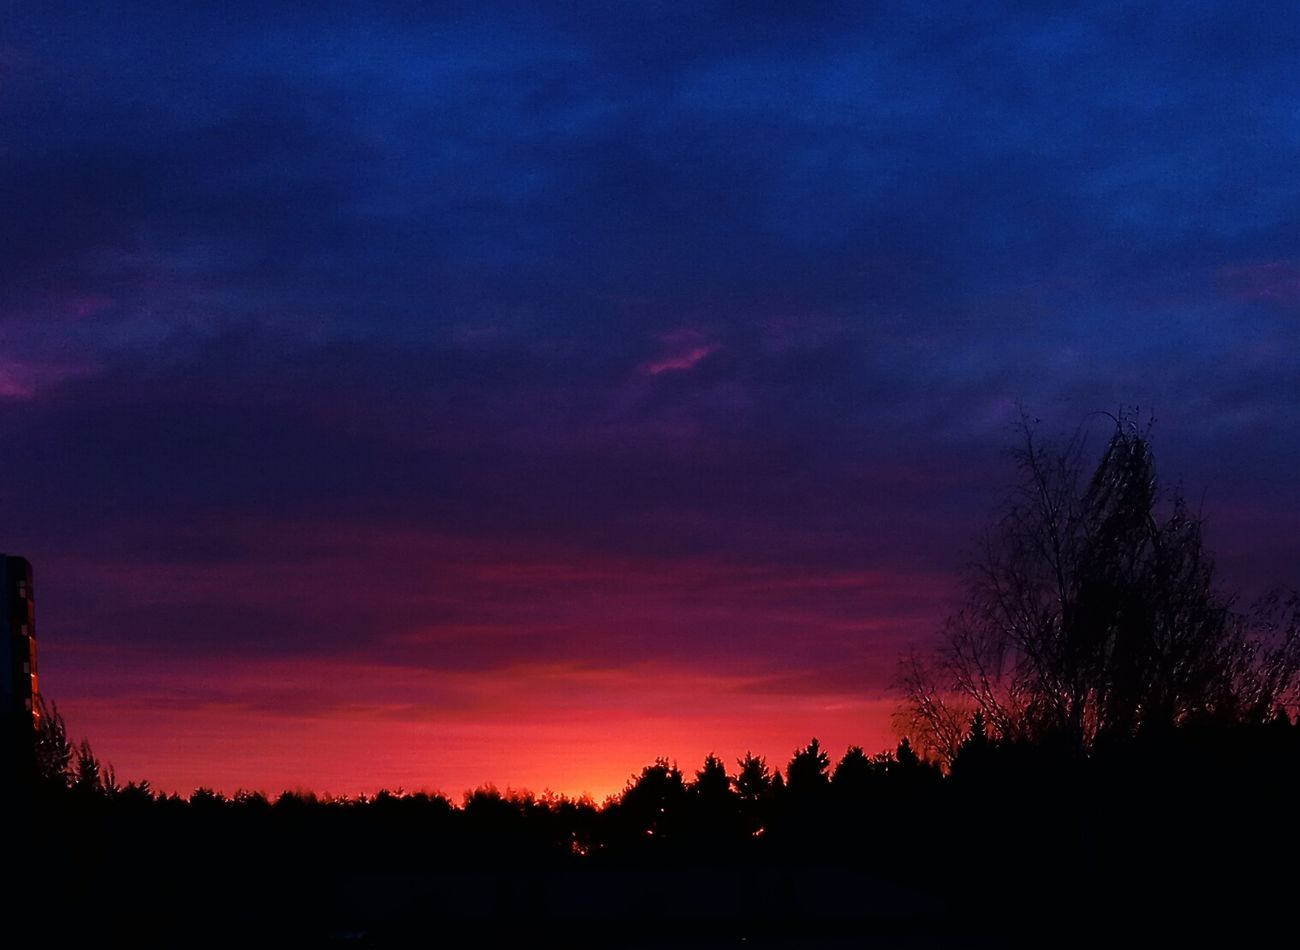 Heaven Sky Collection Beauty Of Nature Heaven Nature_collection Nice Photo I LOVE PHOTOGRAPHY No People Sky Beauty In Nature Nature Sunset Night